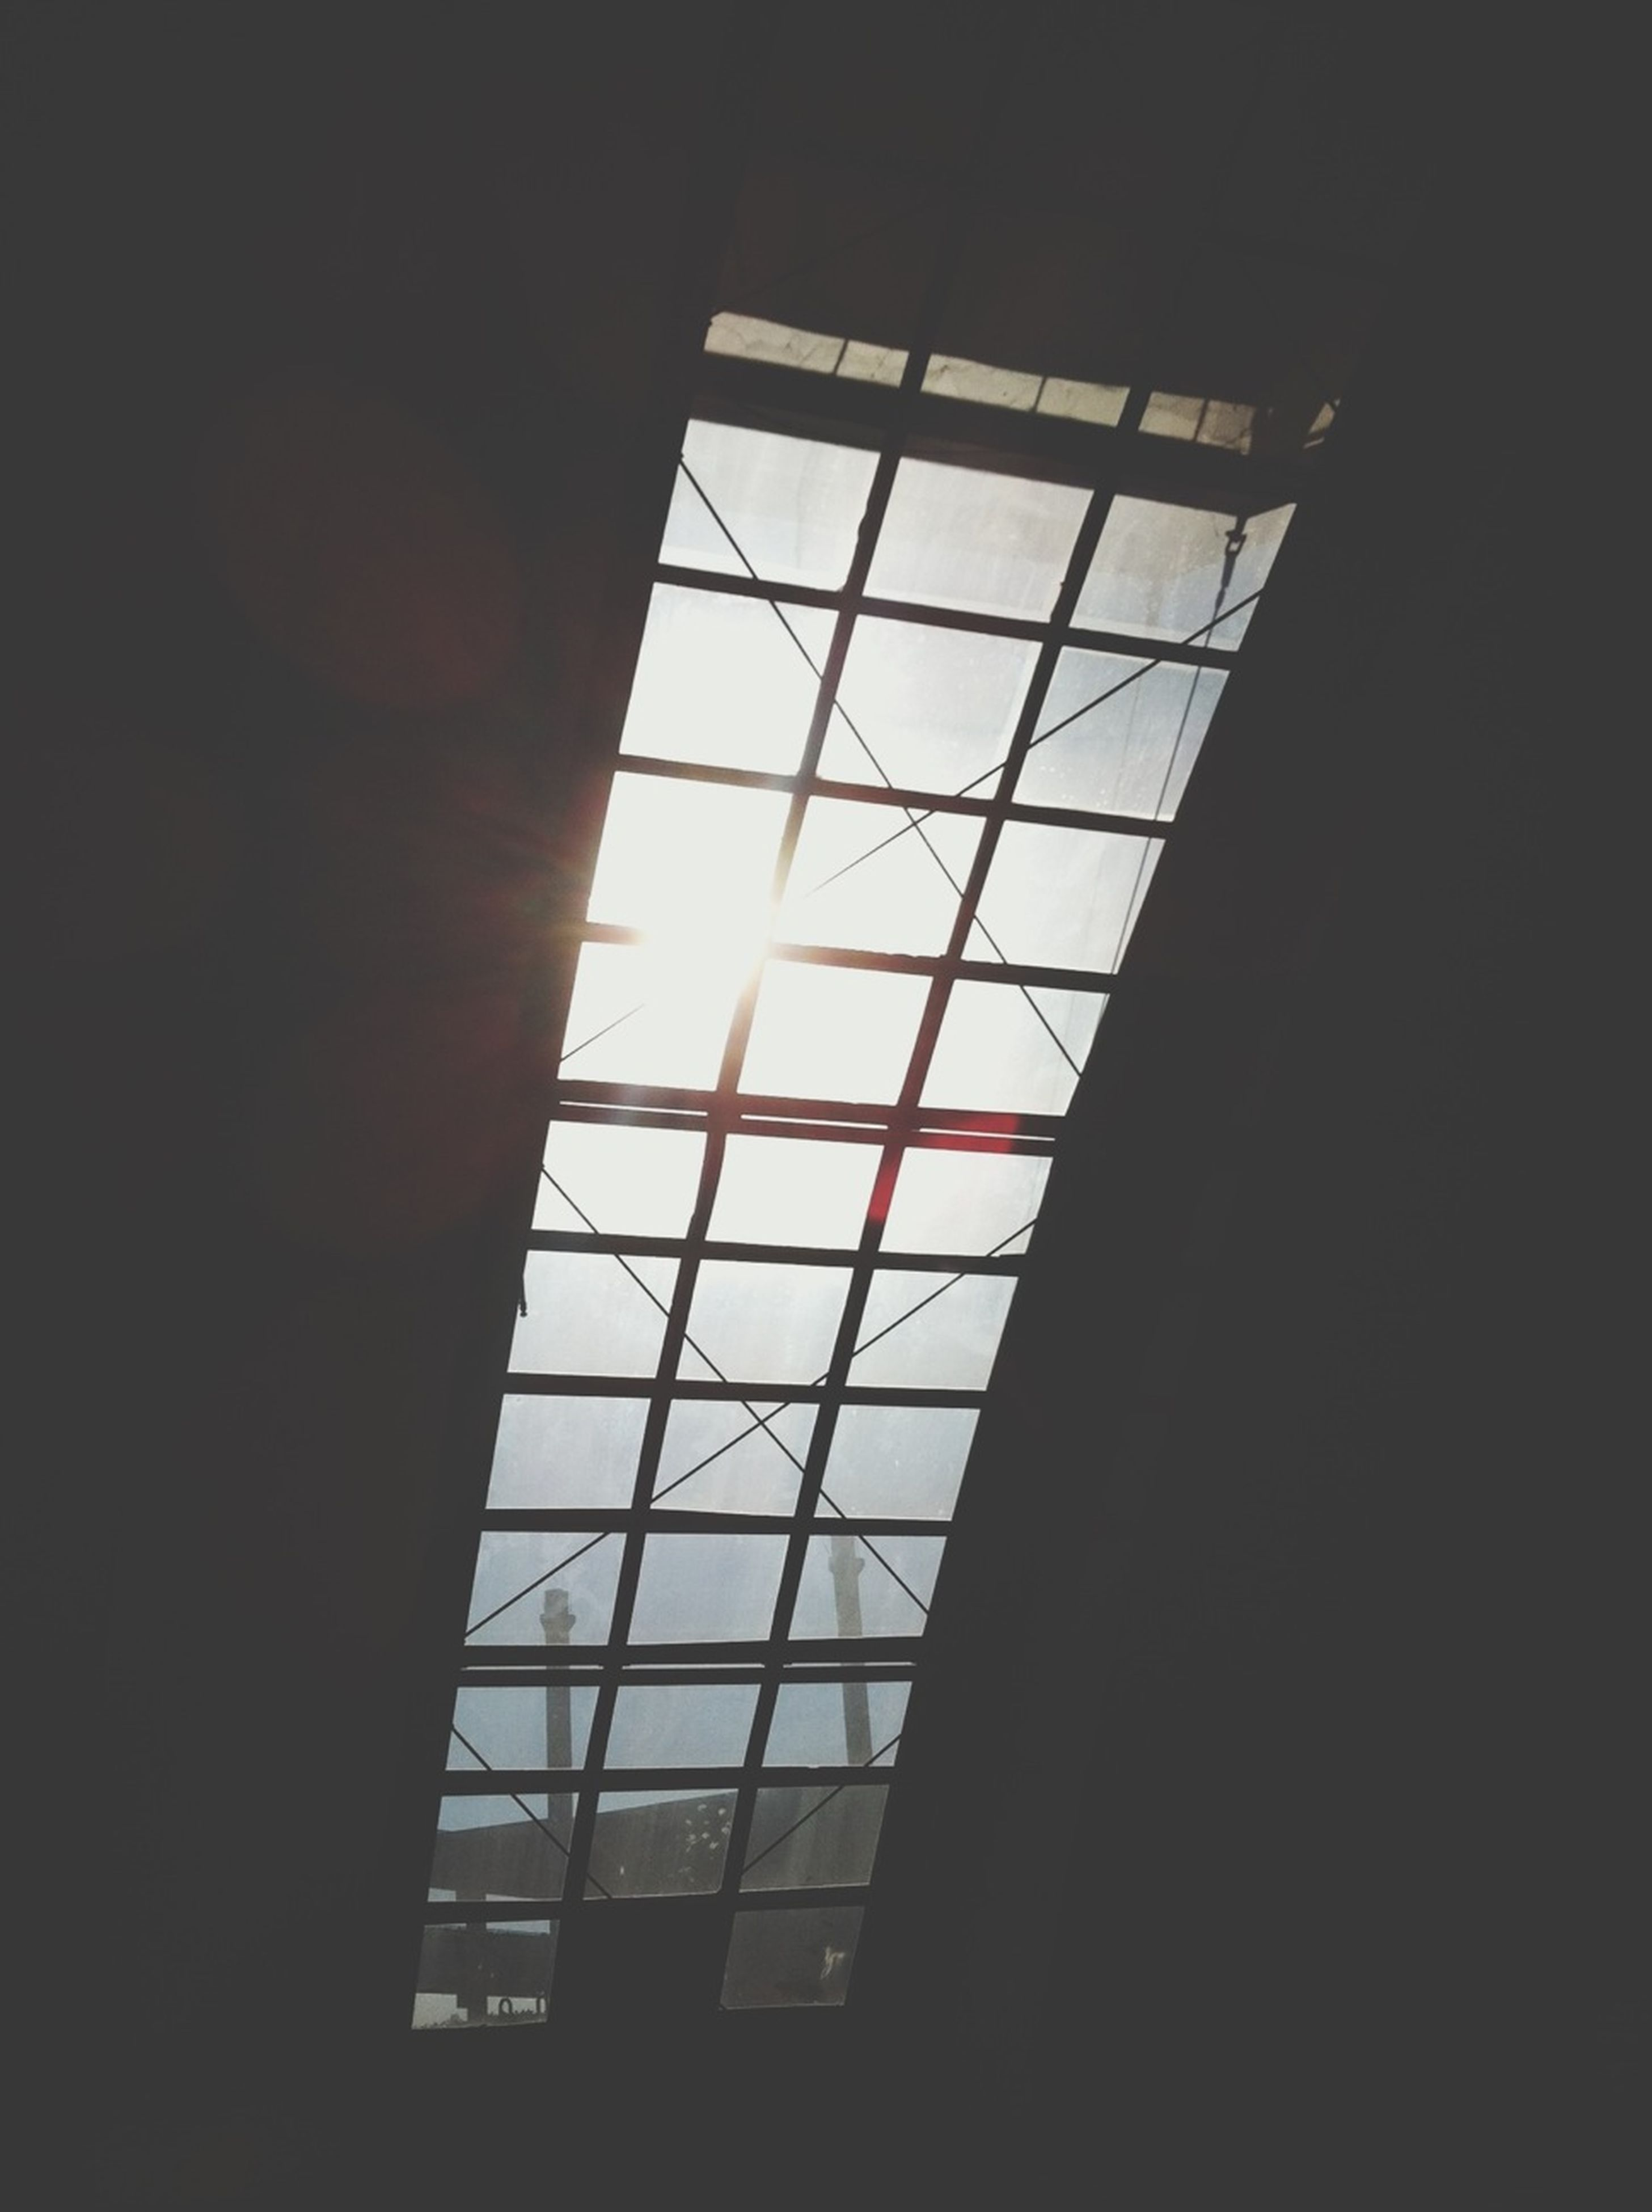 indoors, window, glass - material, architecture, built structure, transparent, low angle view, geometric shape, glass, silhouette, building, ceiling, sky, sunlight, skylight, modern, reflection, no people, pattern, building exterior